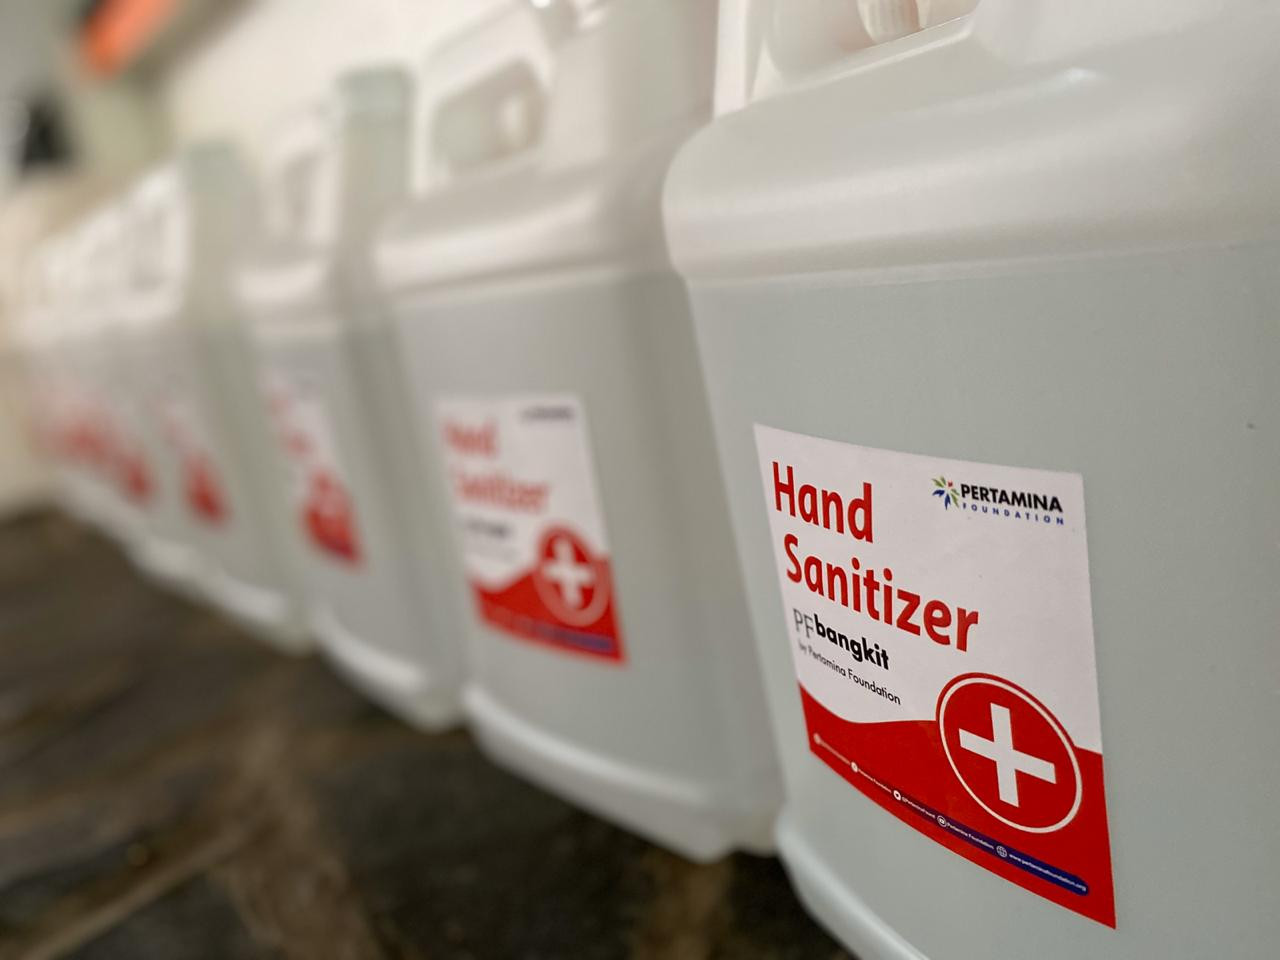 Indonesians least likely to use hand sanitizer among ASEAN peers: YouGov survey